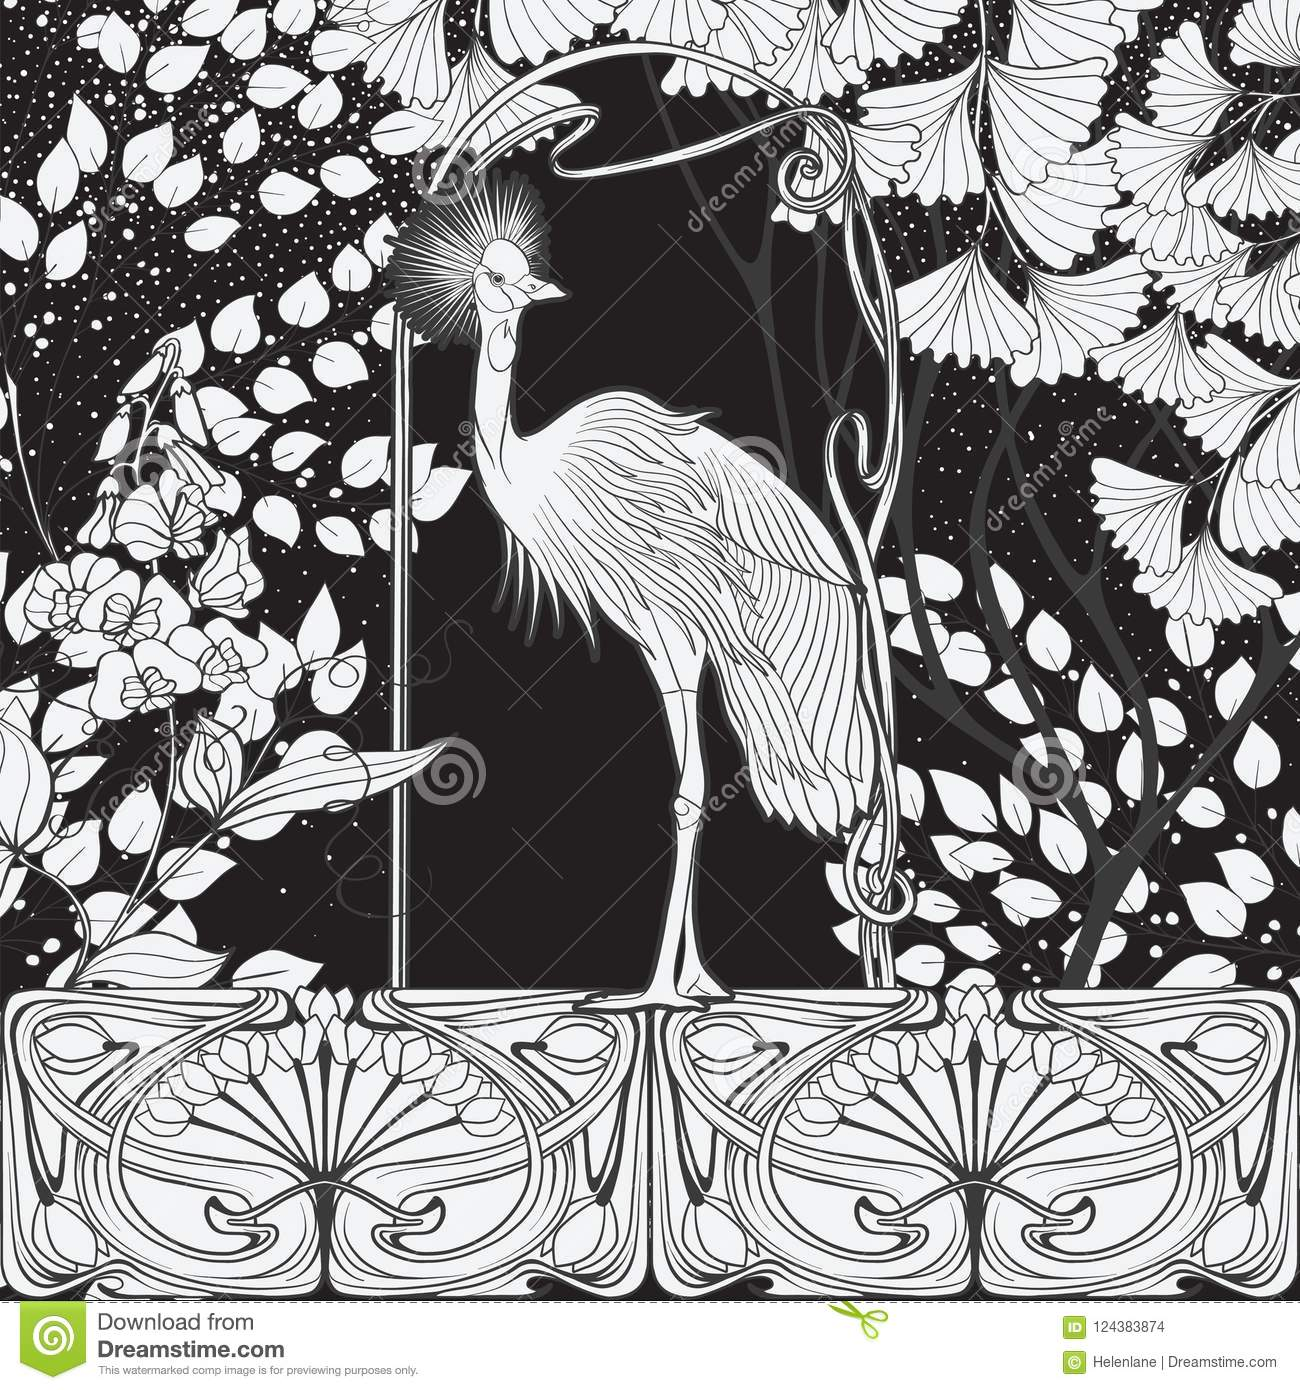 Poster Background With Decorative Flowers And Bird In Art Nouveau